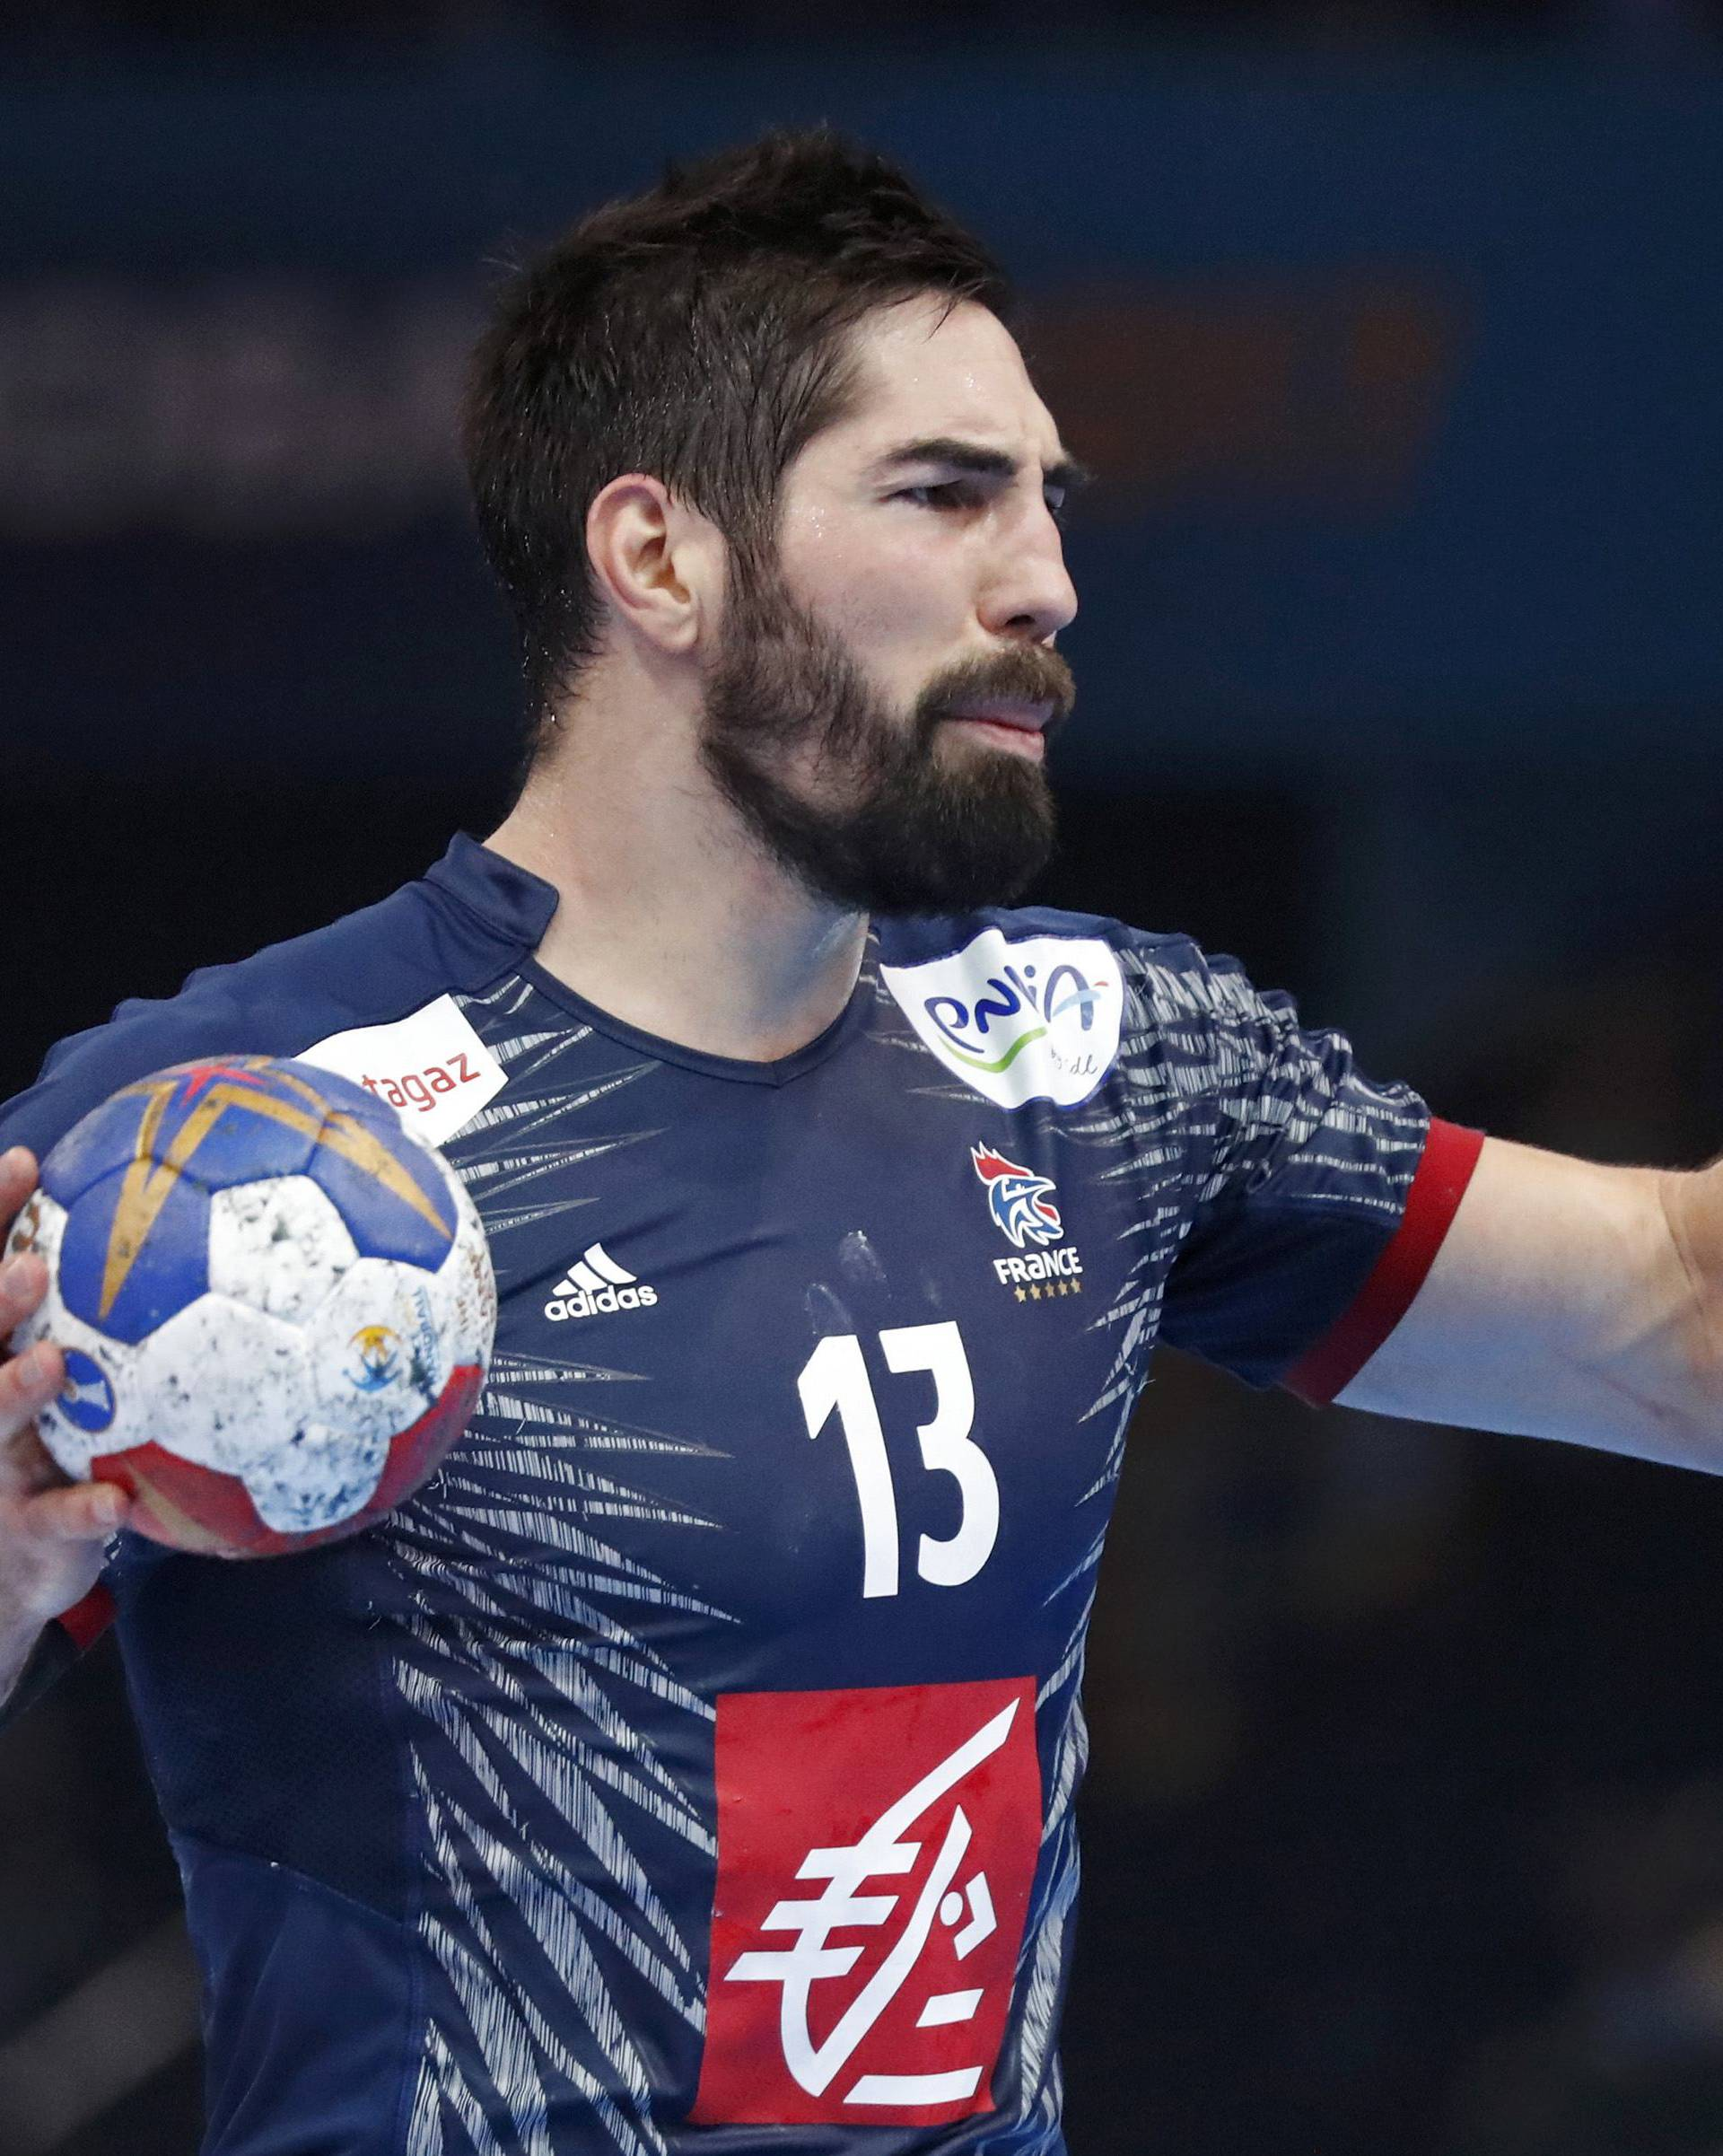 Men's Handball - France v Slovenia - 2017 Men's World Championship, Semi-Finals